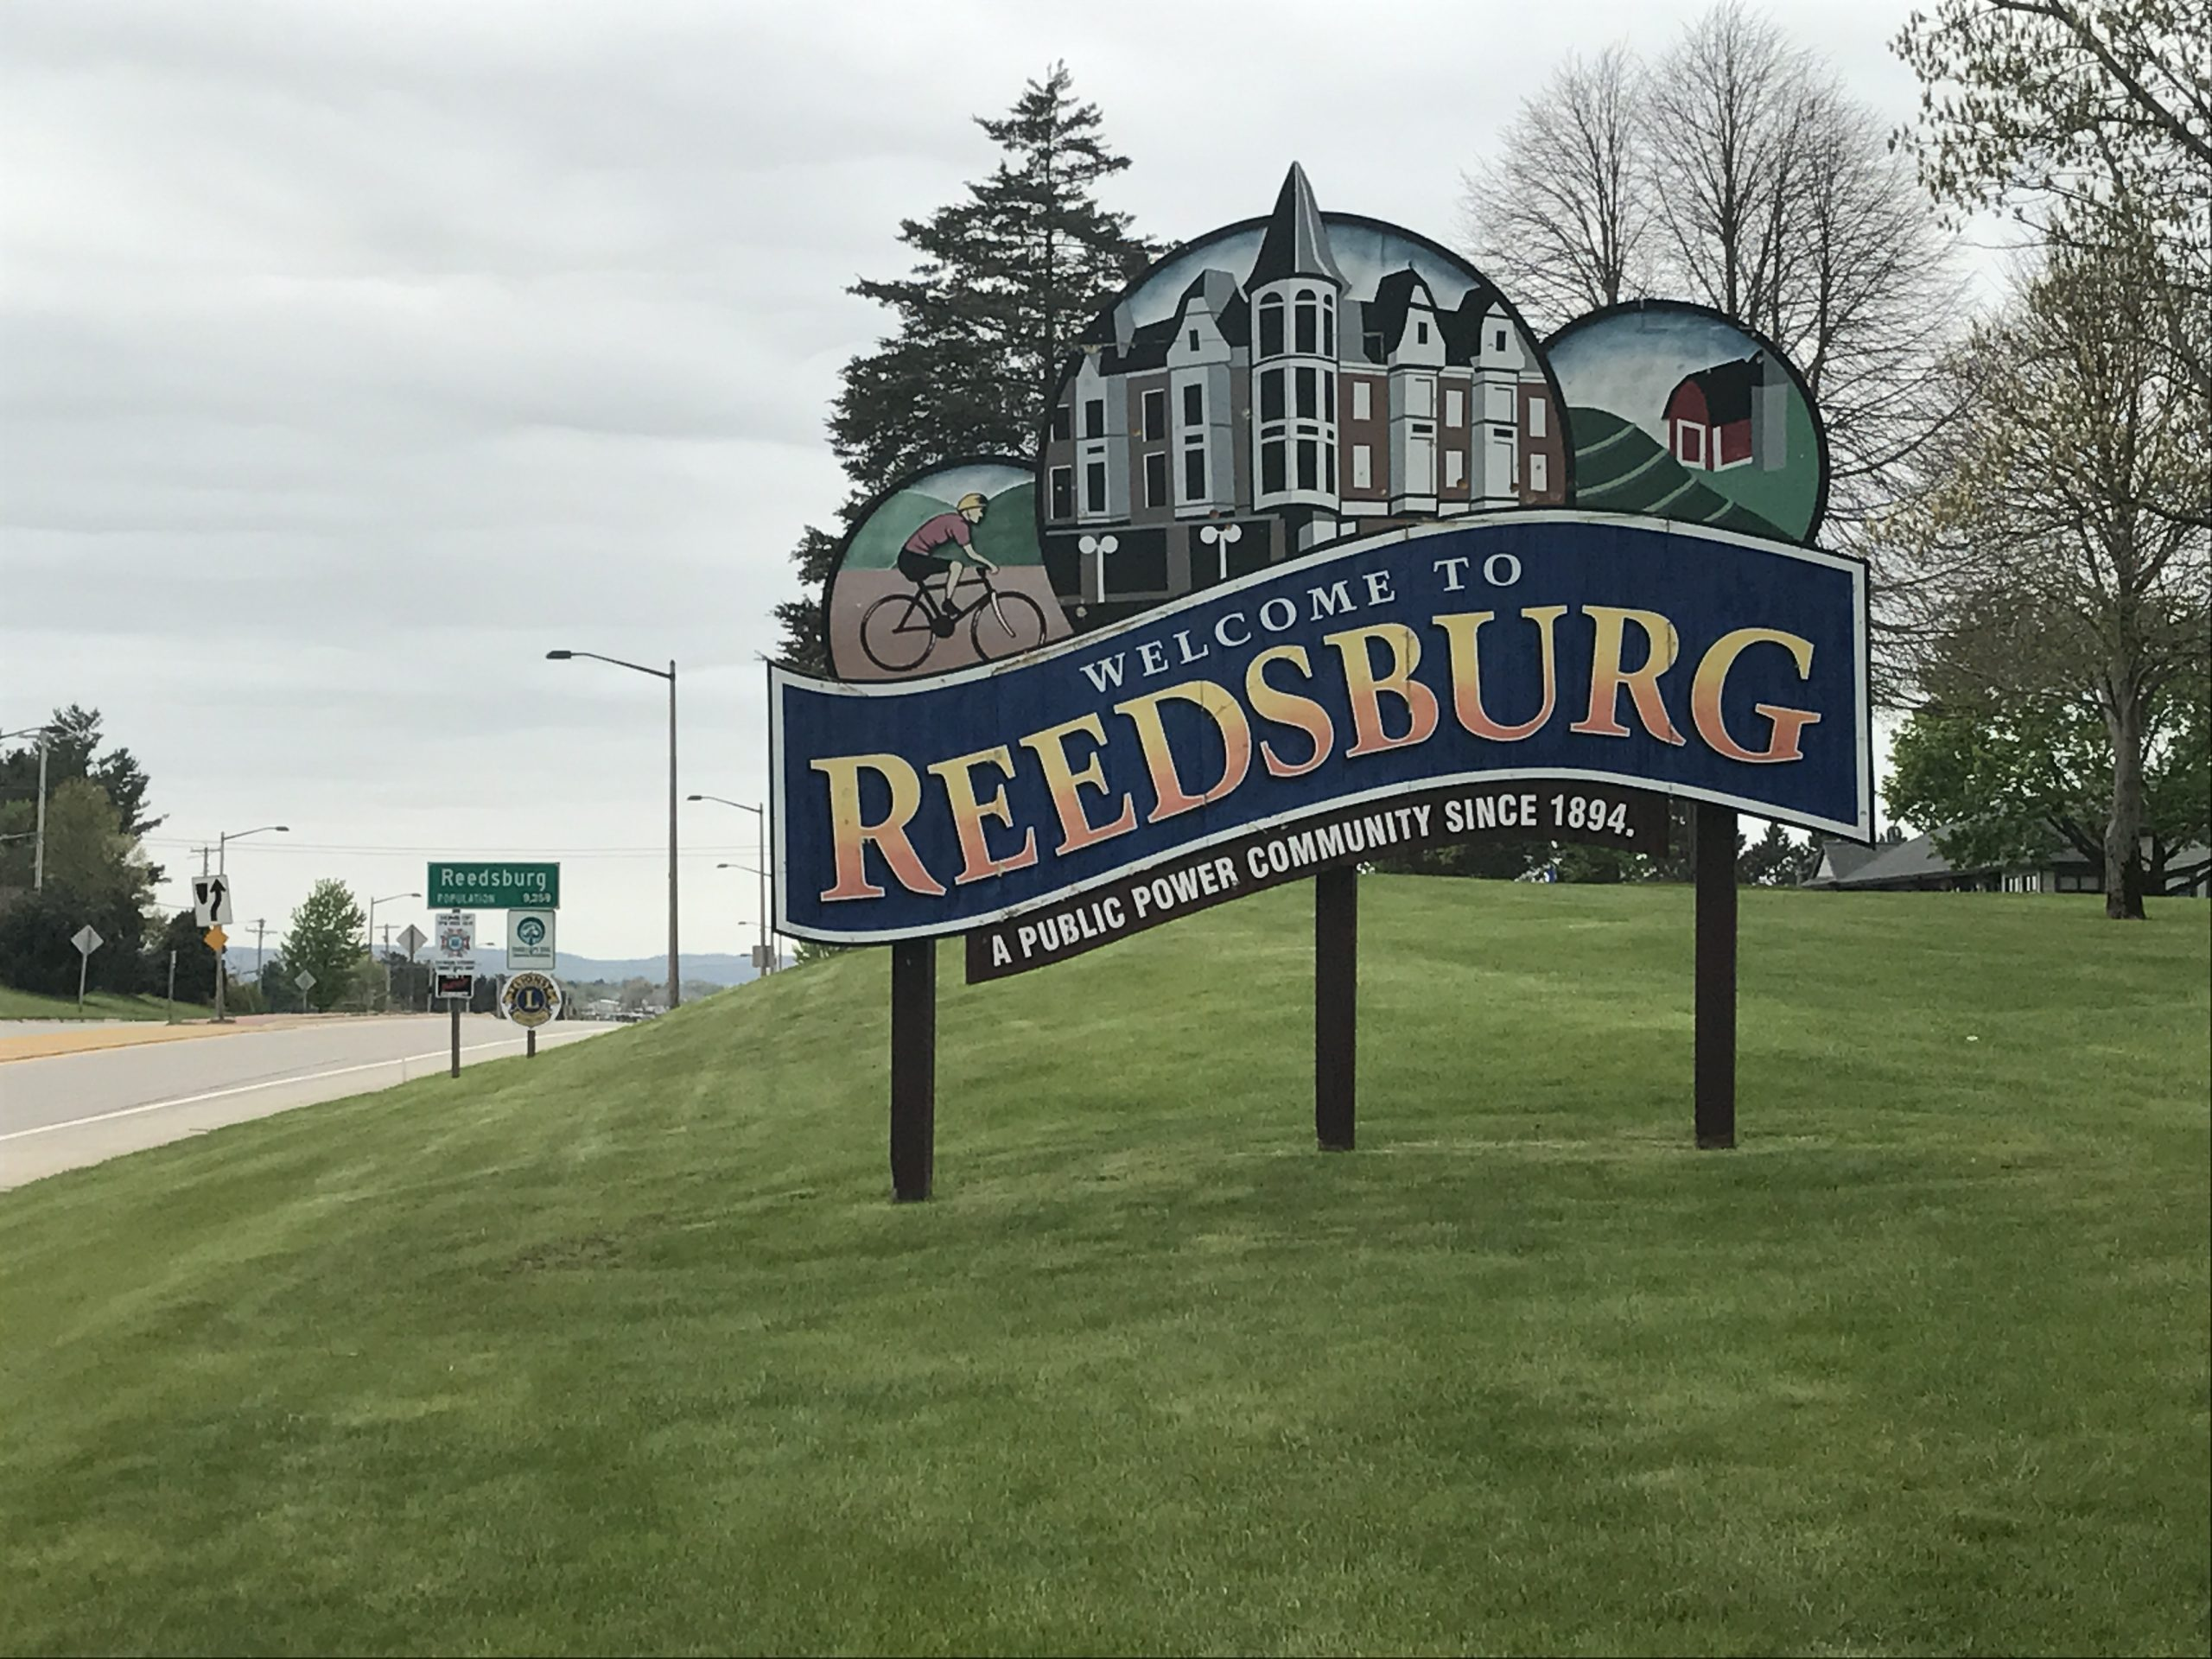 image of Reedsburg